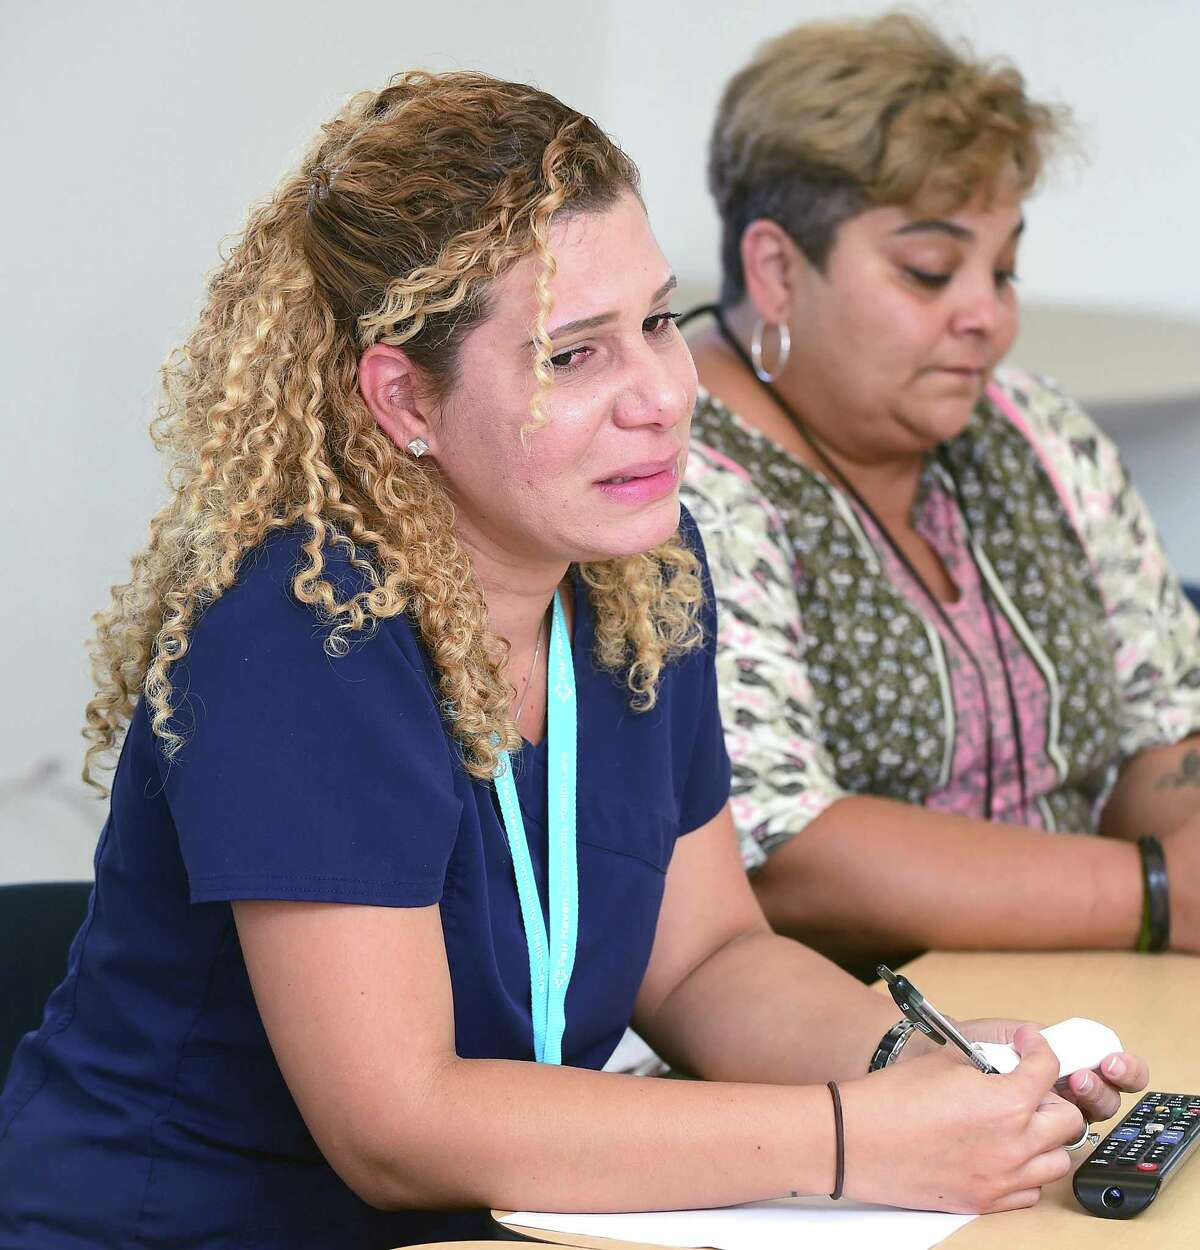 Kelly Rivera, left, talks about her parents' situation in Anasco, Puerto Rico, at the Fair Haven Community Health Center Wednesday in New Haven, where she works. At right is Carmen Camacho.